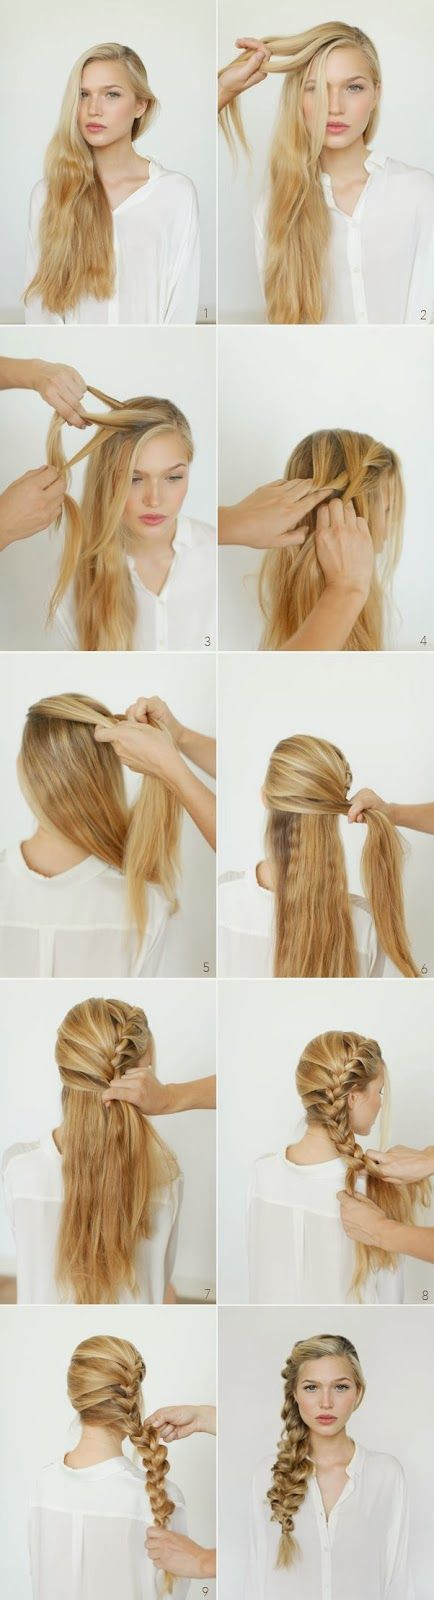 simple-mermaid-braid via